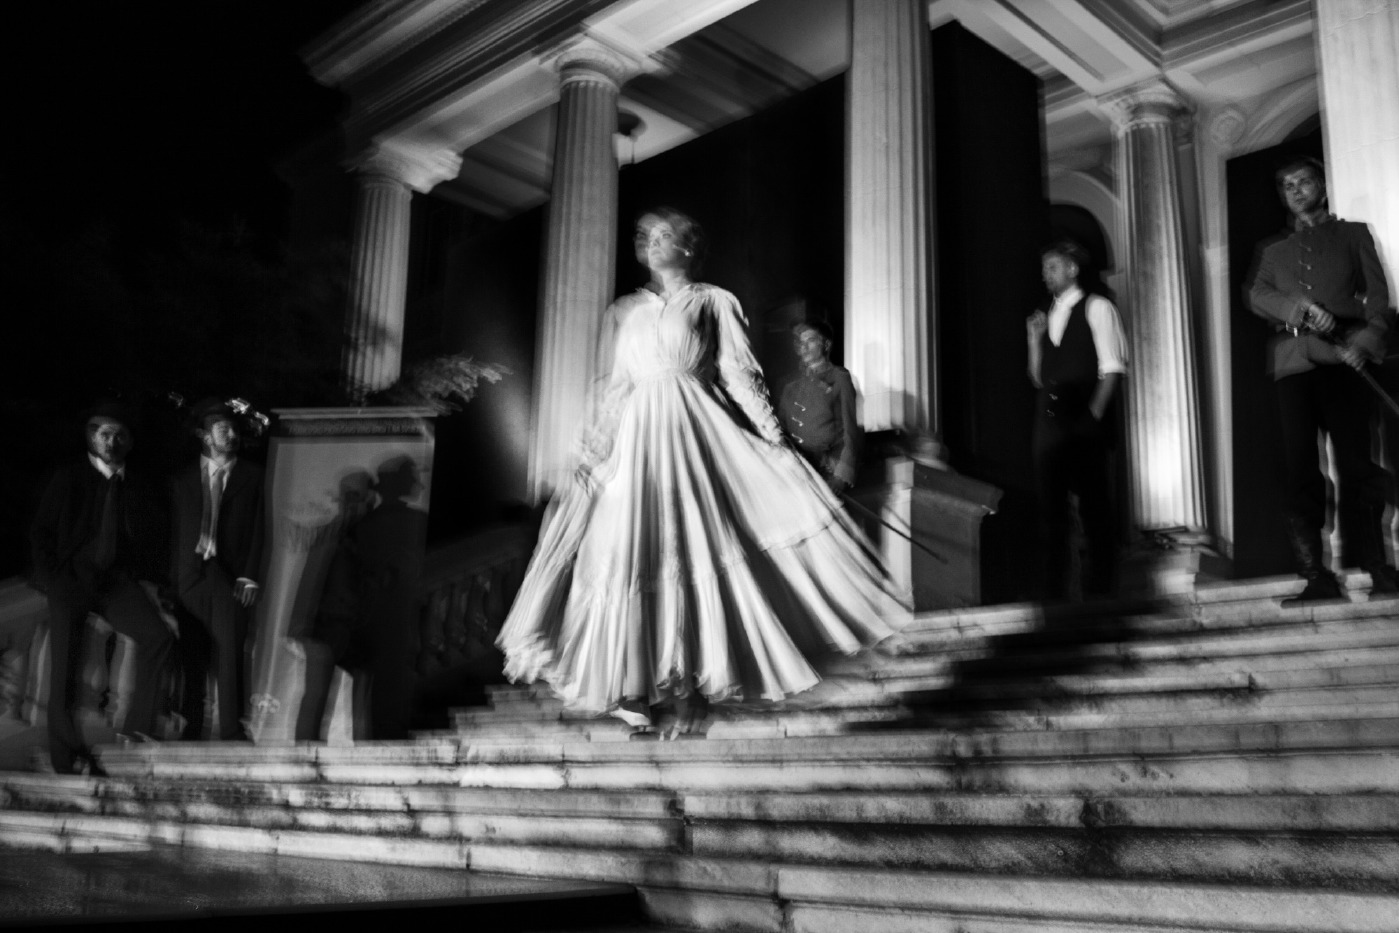 """A model is seen during the fashion performance """"Sarajevo assassination"""", wearing old-fashioned dress of the period 1914-1918. Sarajevo, Bosnia and Herzegovina 2014. © Matteo Bastianelli"""